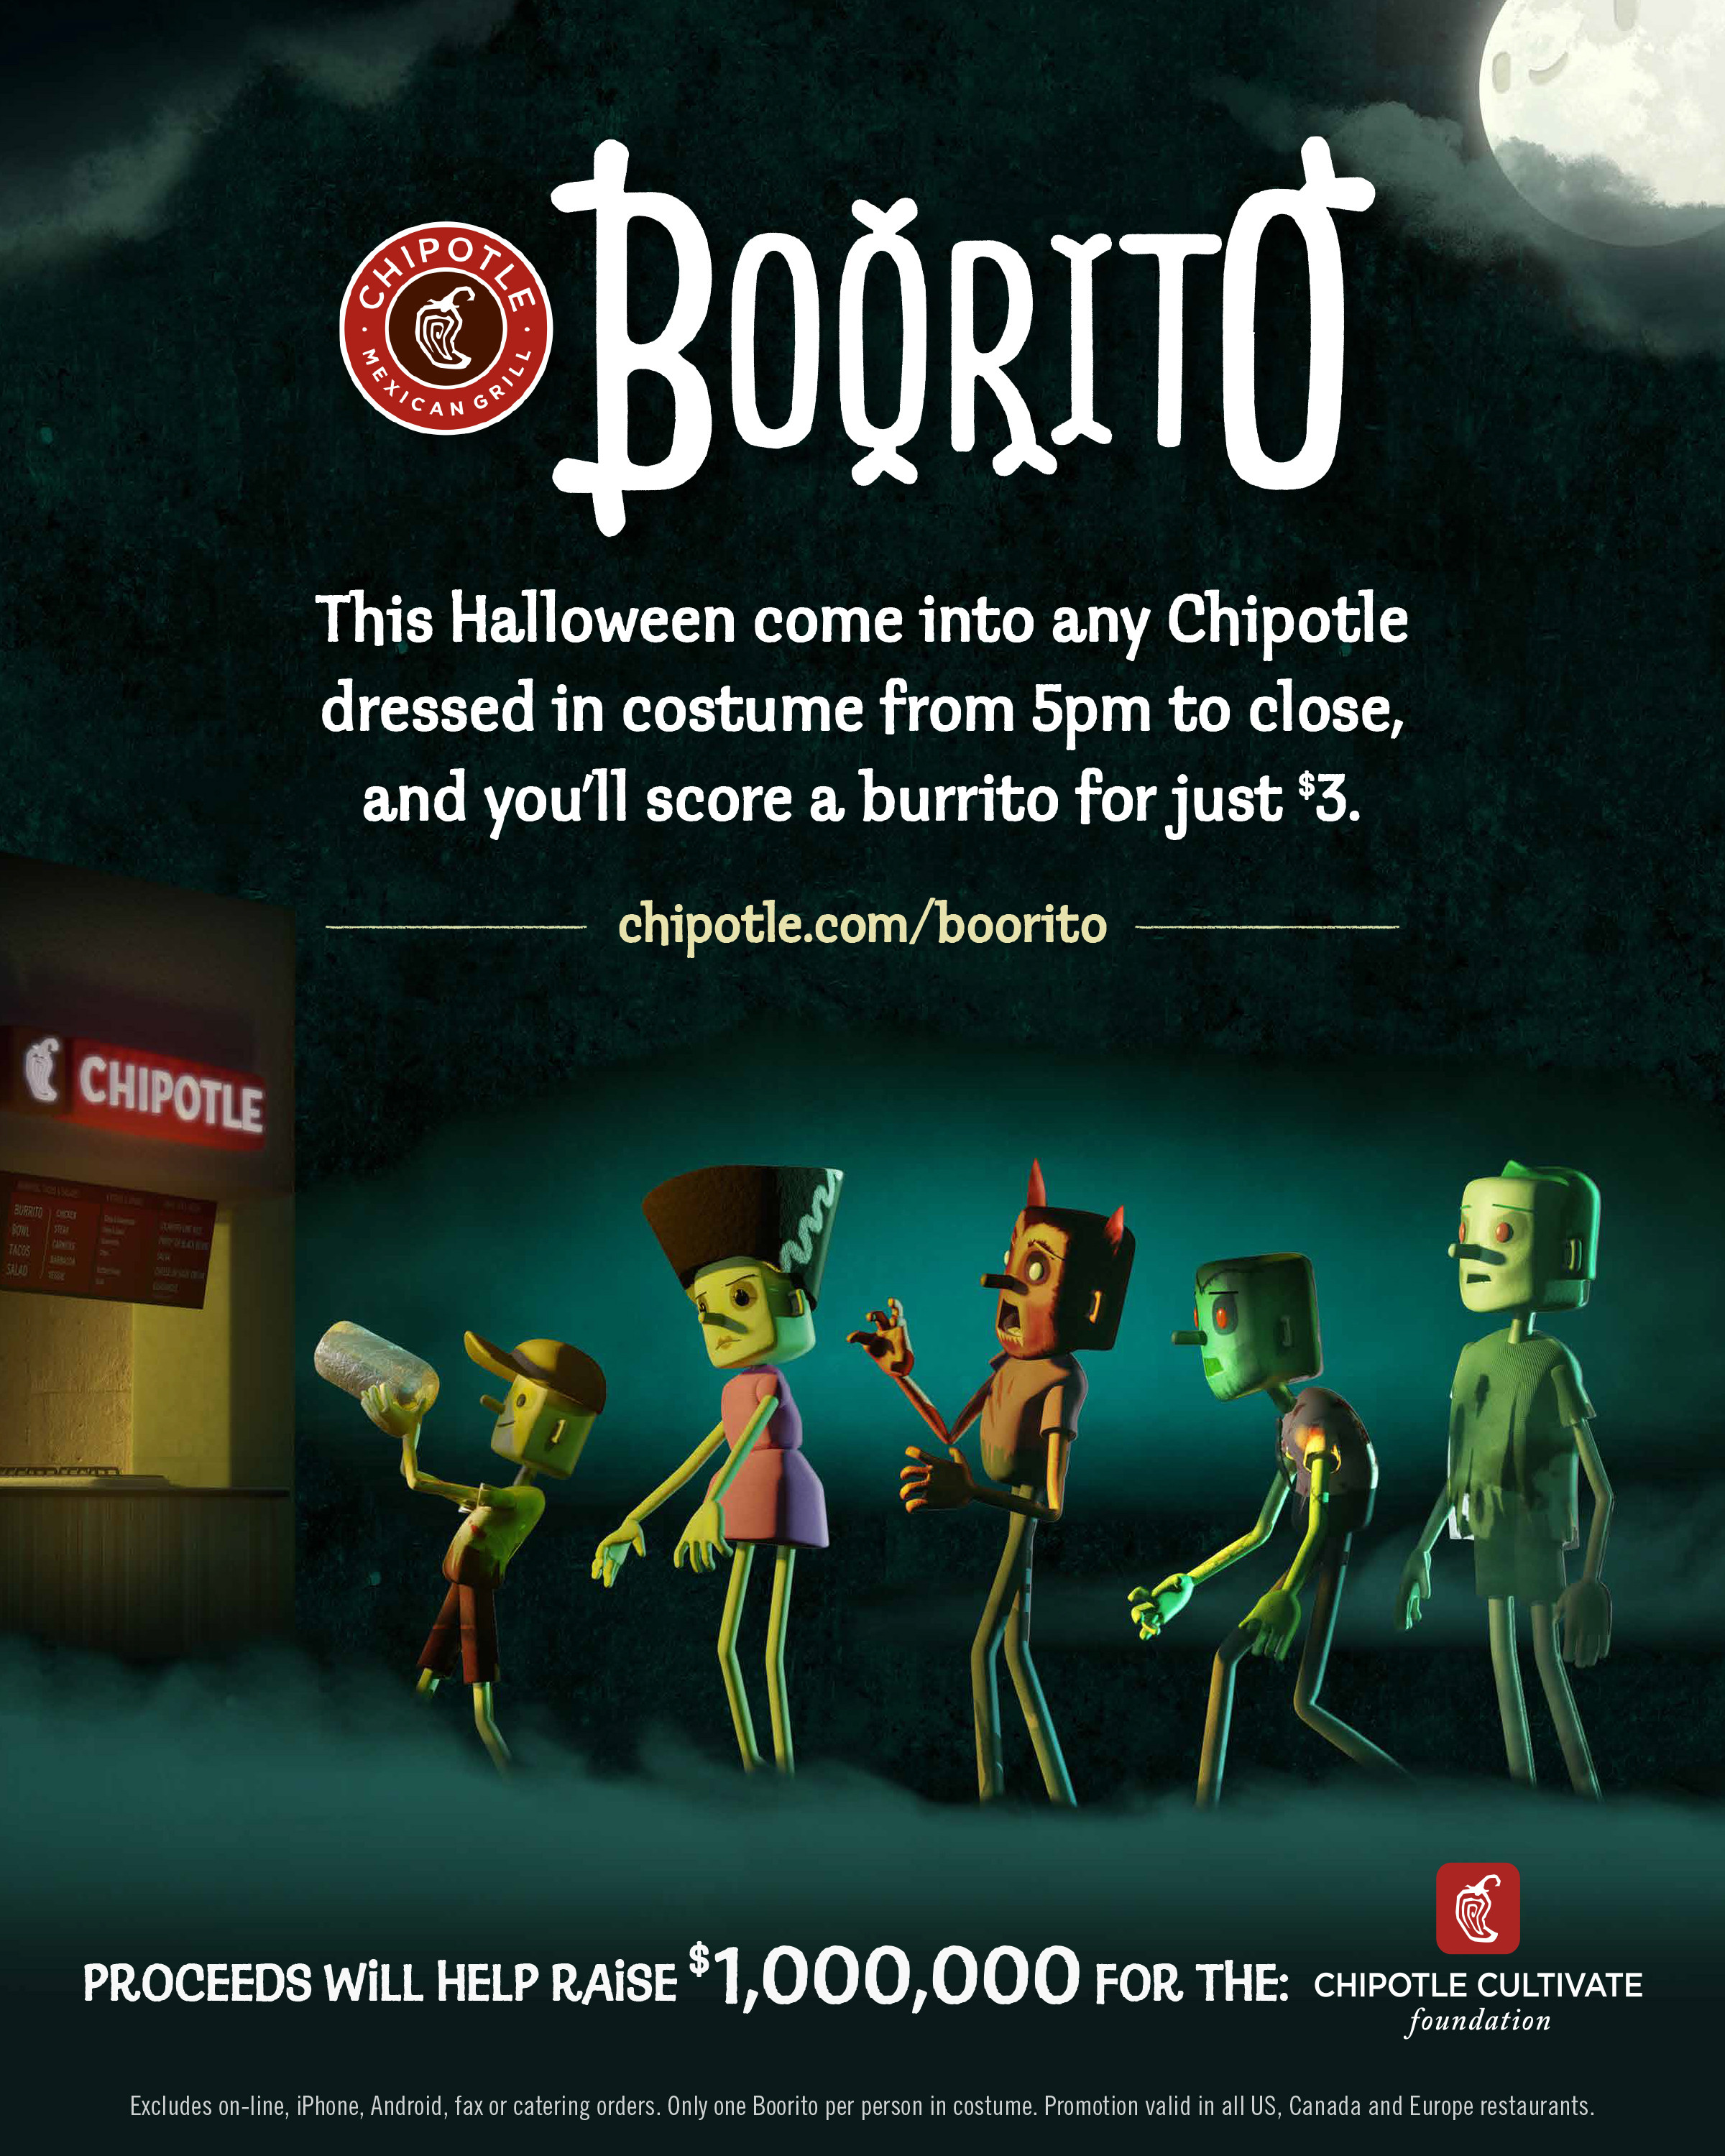 $3 Burritos At Chipotle On Halloween  CHIPOTLE CELEBRATES HALLOWEEN WITH BOORITO Chipotle